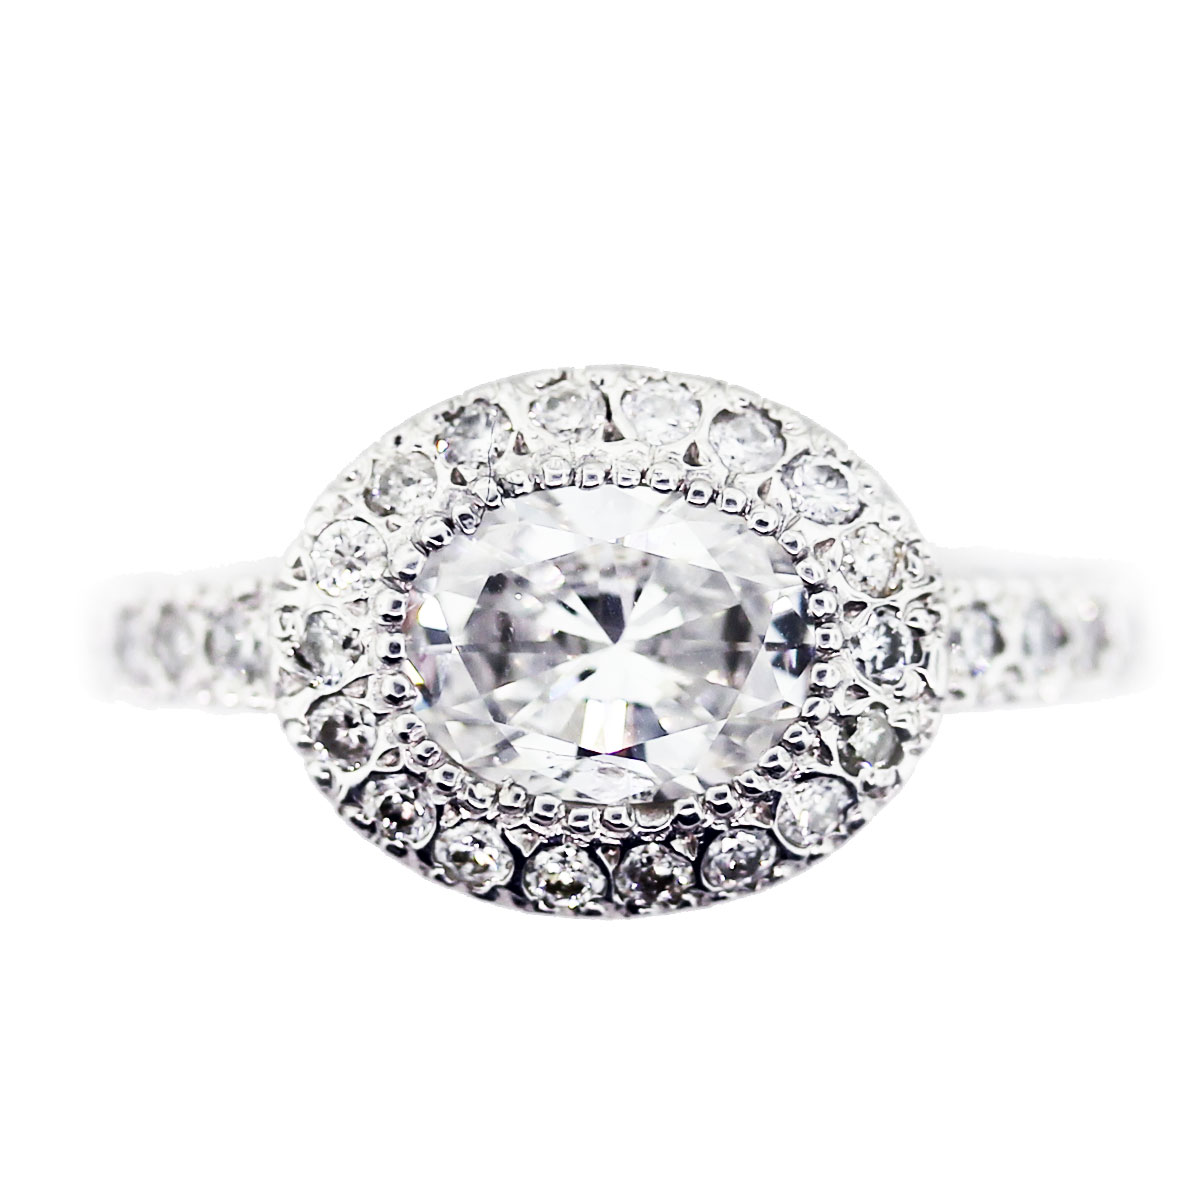 Preowned 1 Carat Oval Cut Diamond Halo Engagement Ring